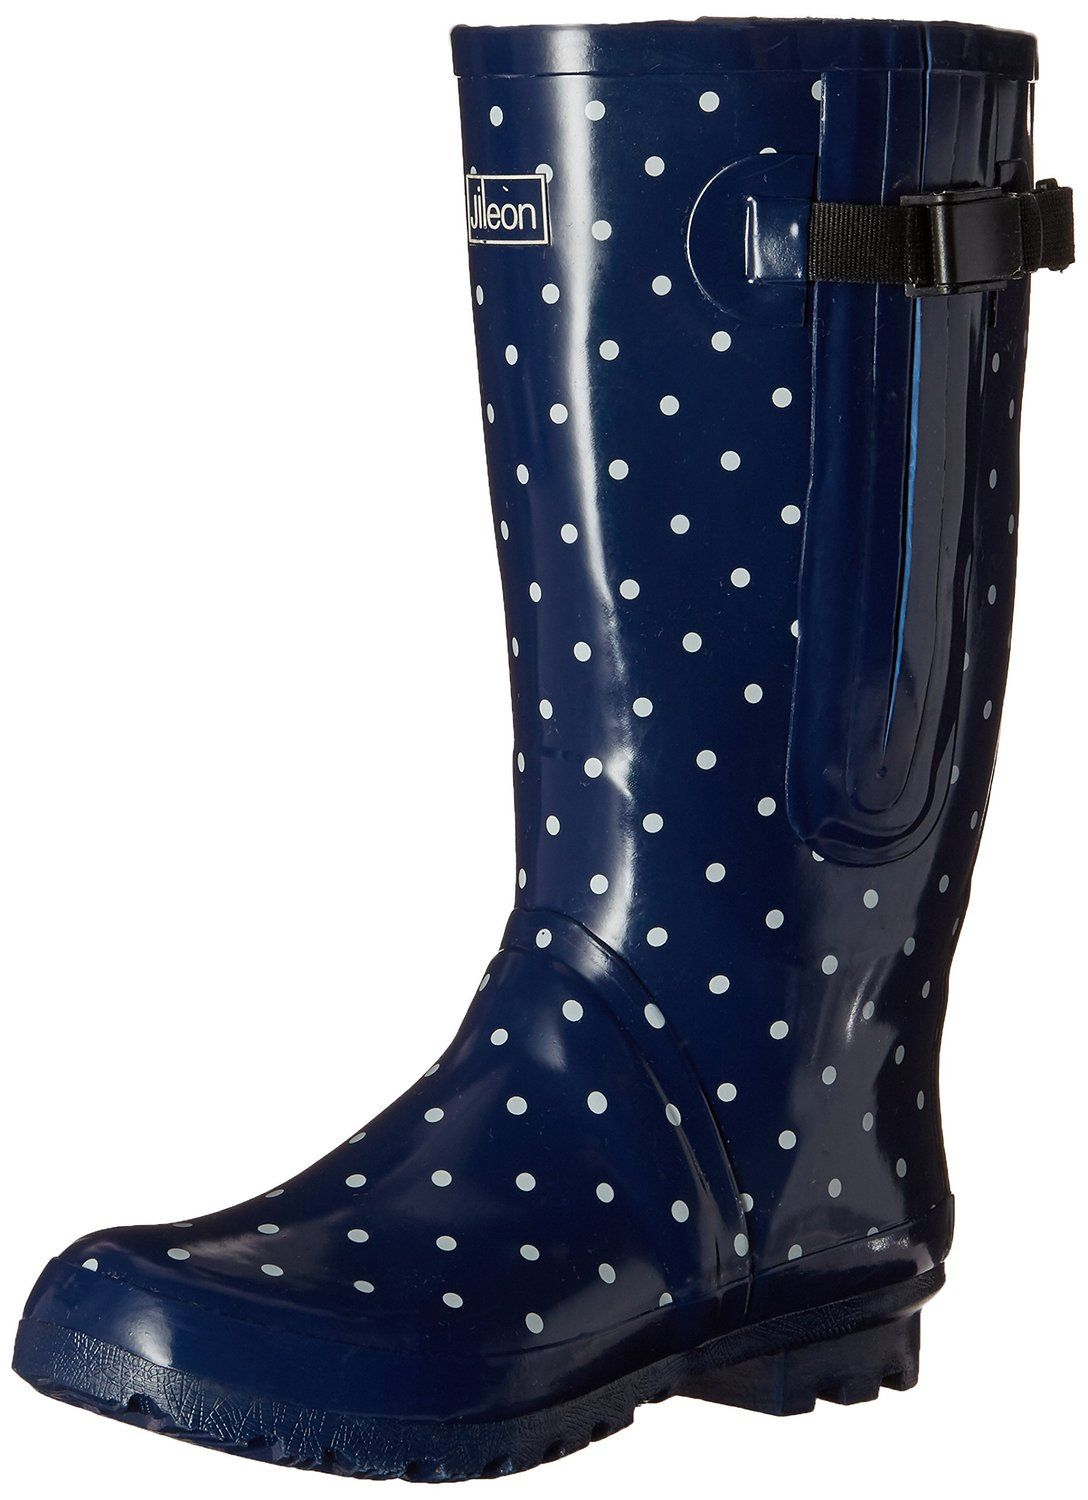 09563d2ec57 Extra Wide Calf Rain Boots - Navy with White Spots up to 21 Inch Calf      More info could be found at the image url.